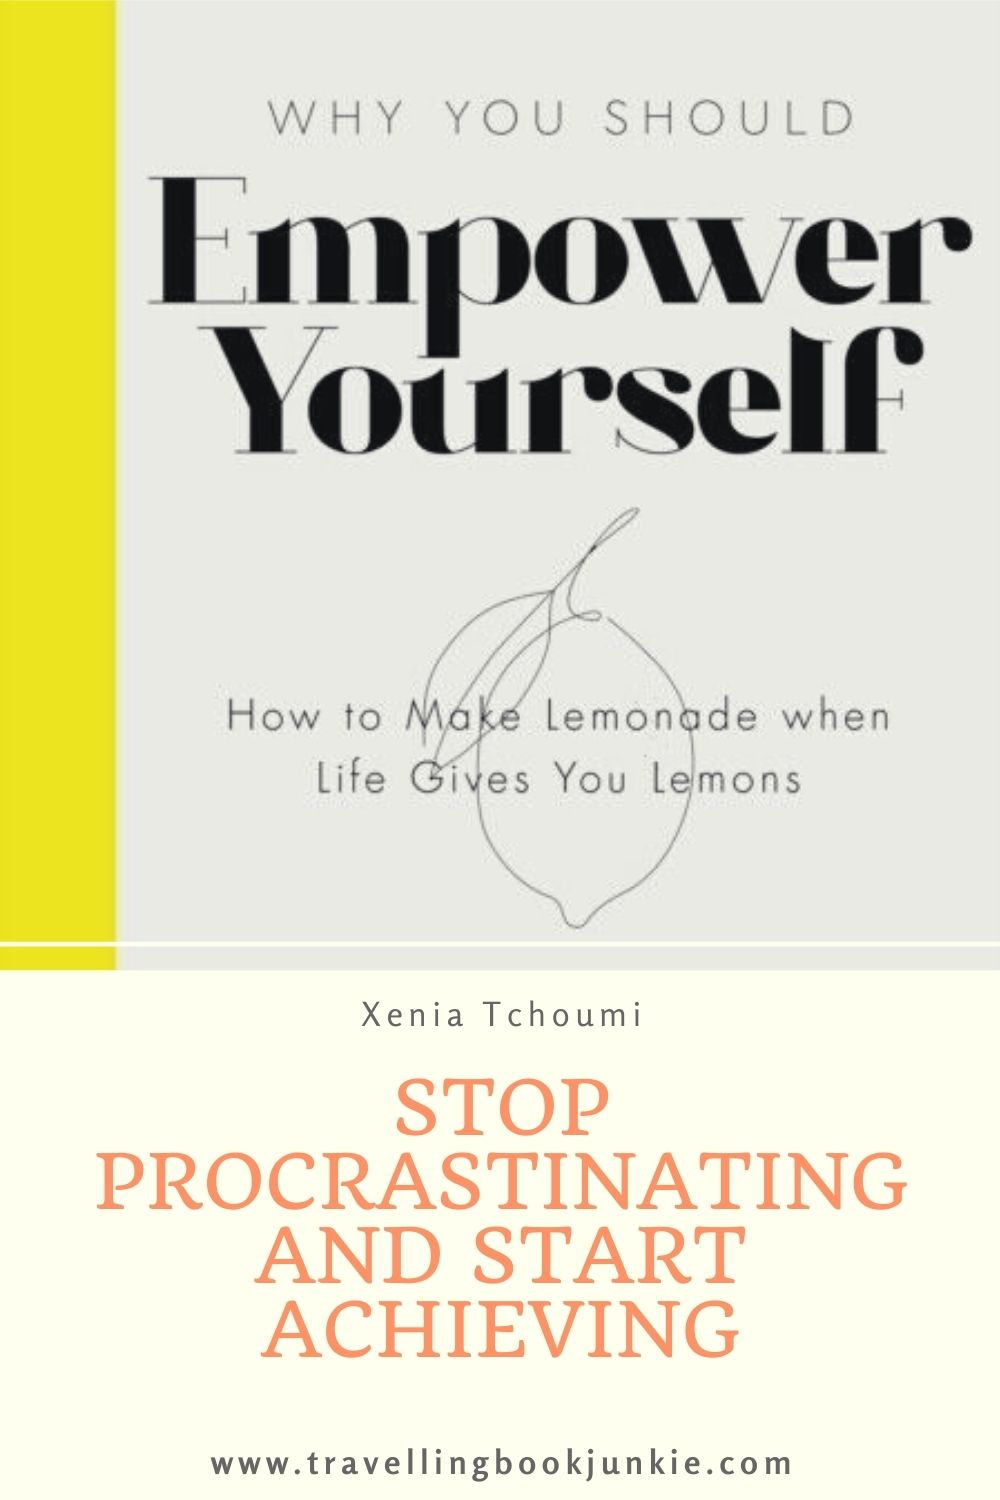 When you are struggling for inspiration on how to succeed for yourself, picking up a #motivational book is a great way to get tips. Empower Yourself by Xenia Tchoumi is a book design to guide you to success. Full review via @tbookjunkie